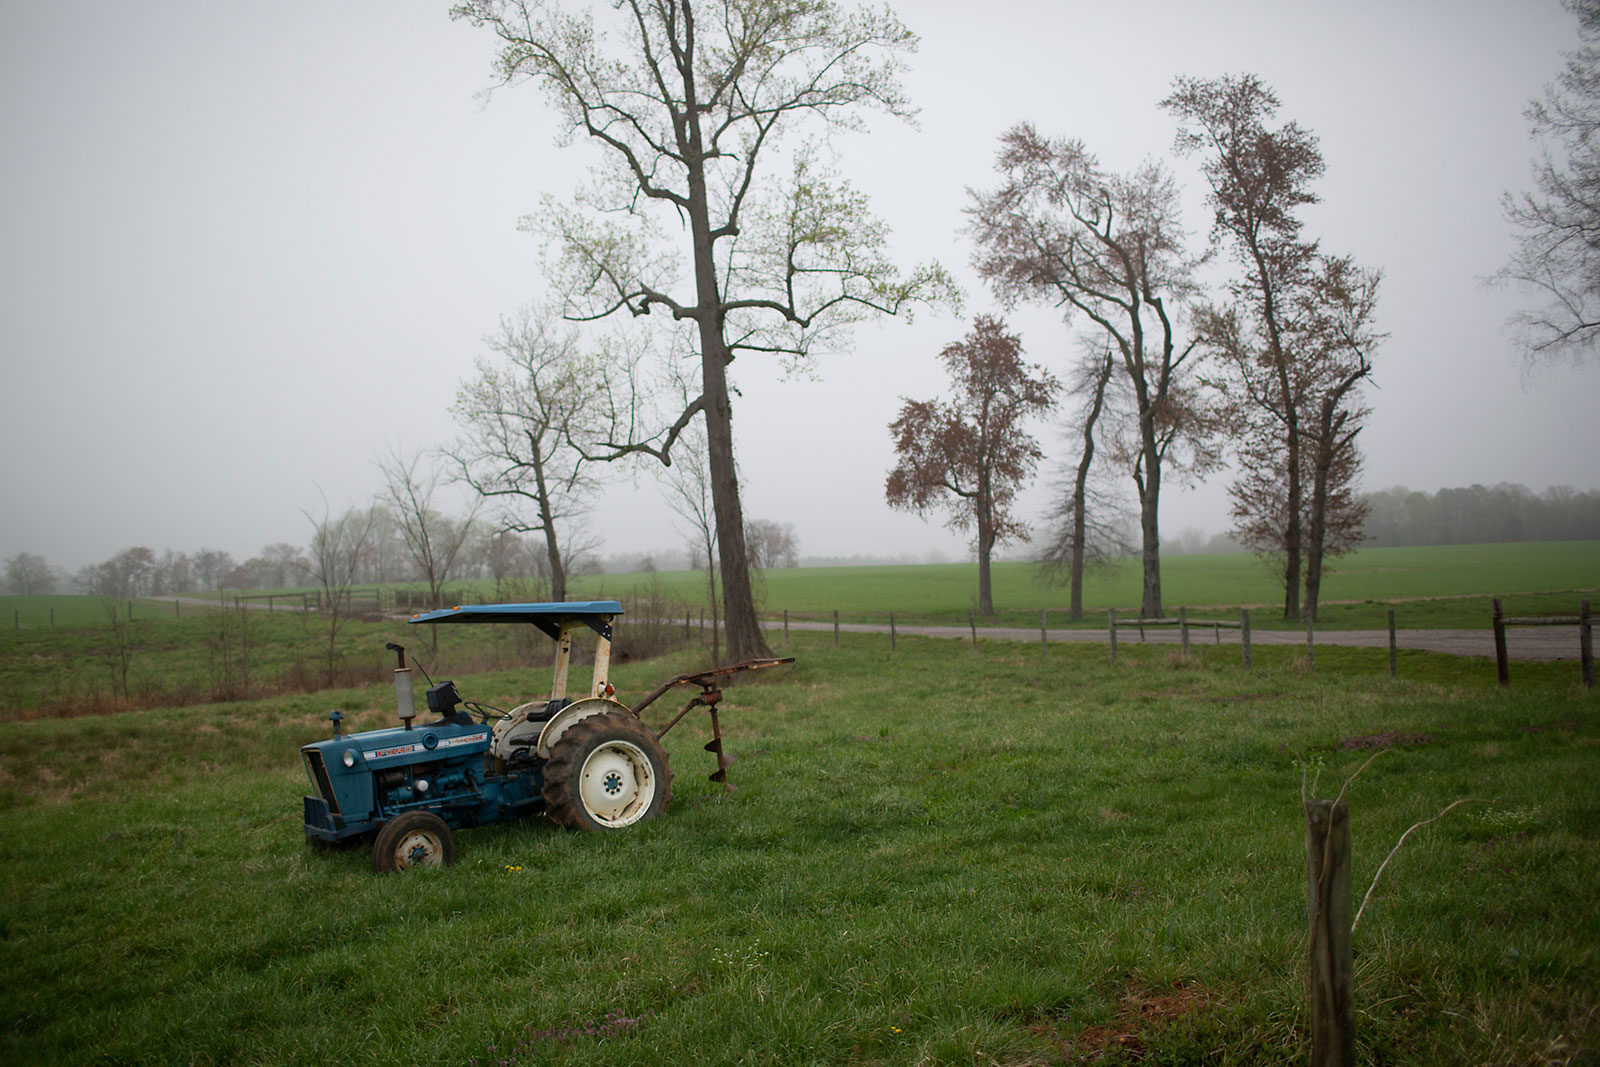 A tractor sits in a Virginia field that boarders the retreat route General Robert E. Lee followed in 1865.